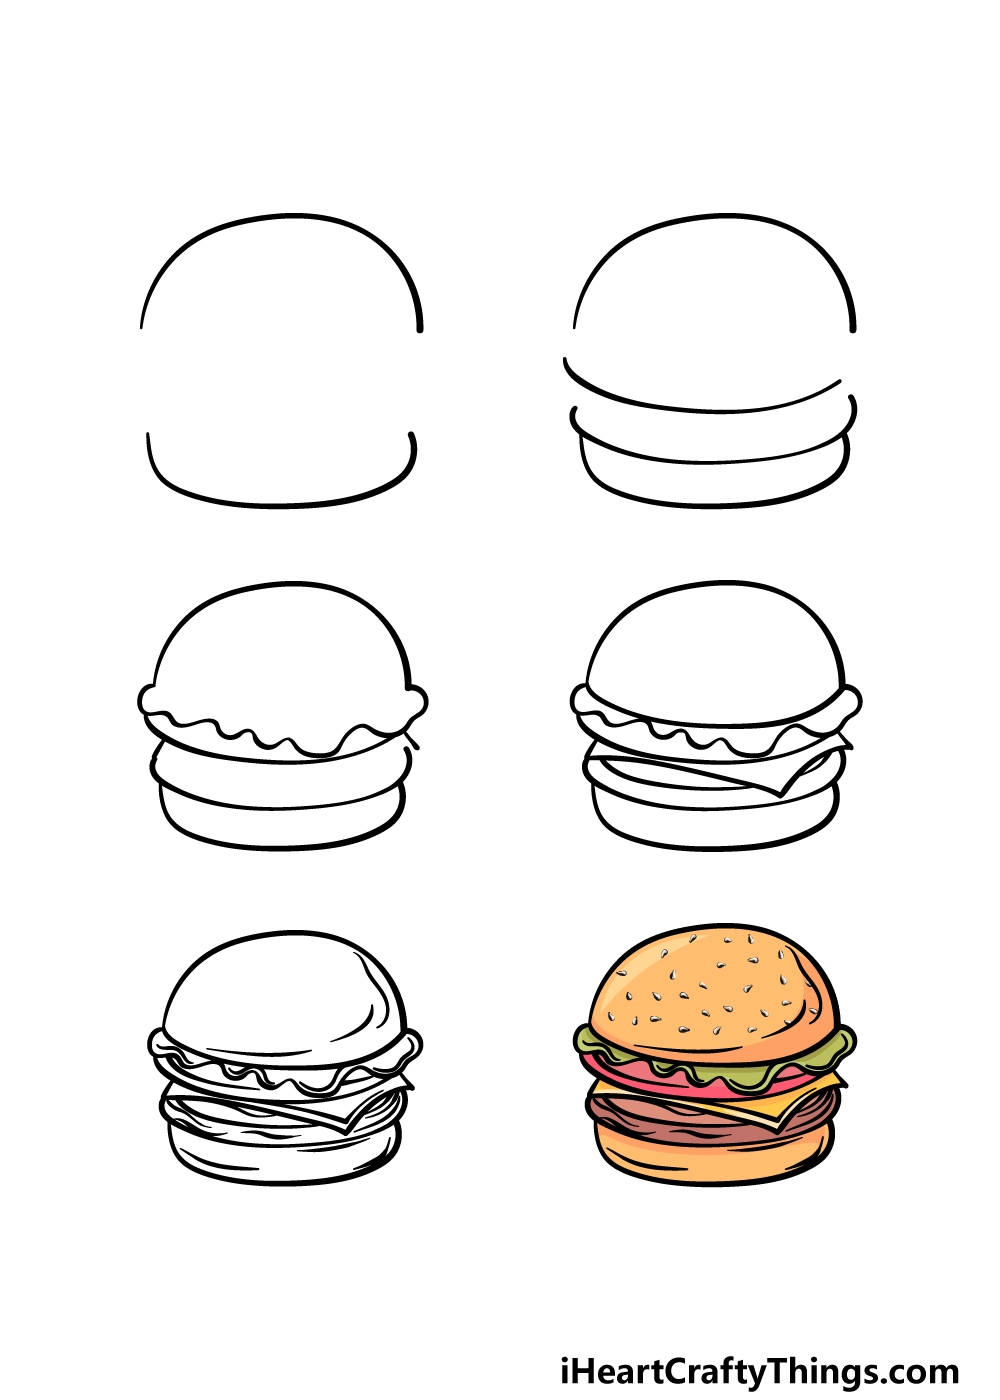 how to draw a burger in 6 steps